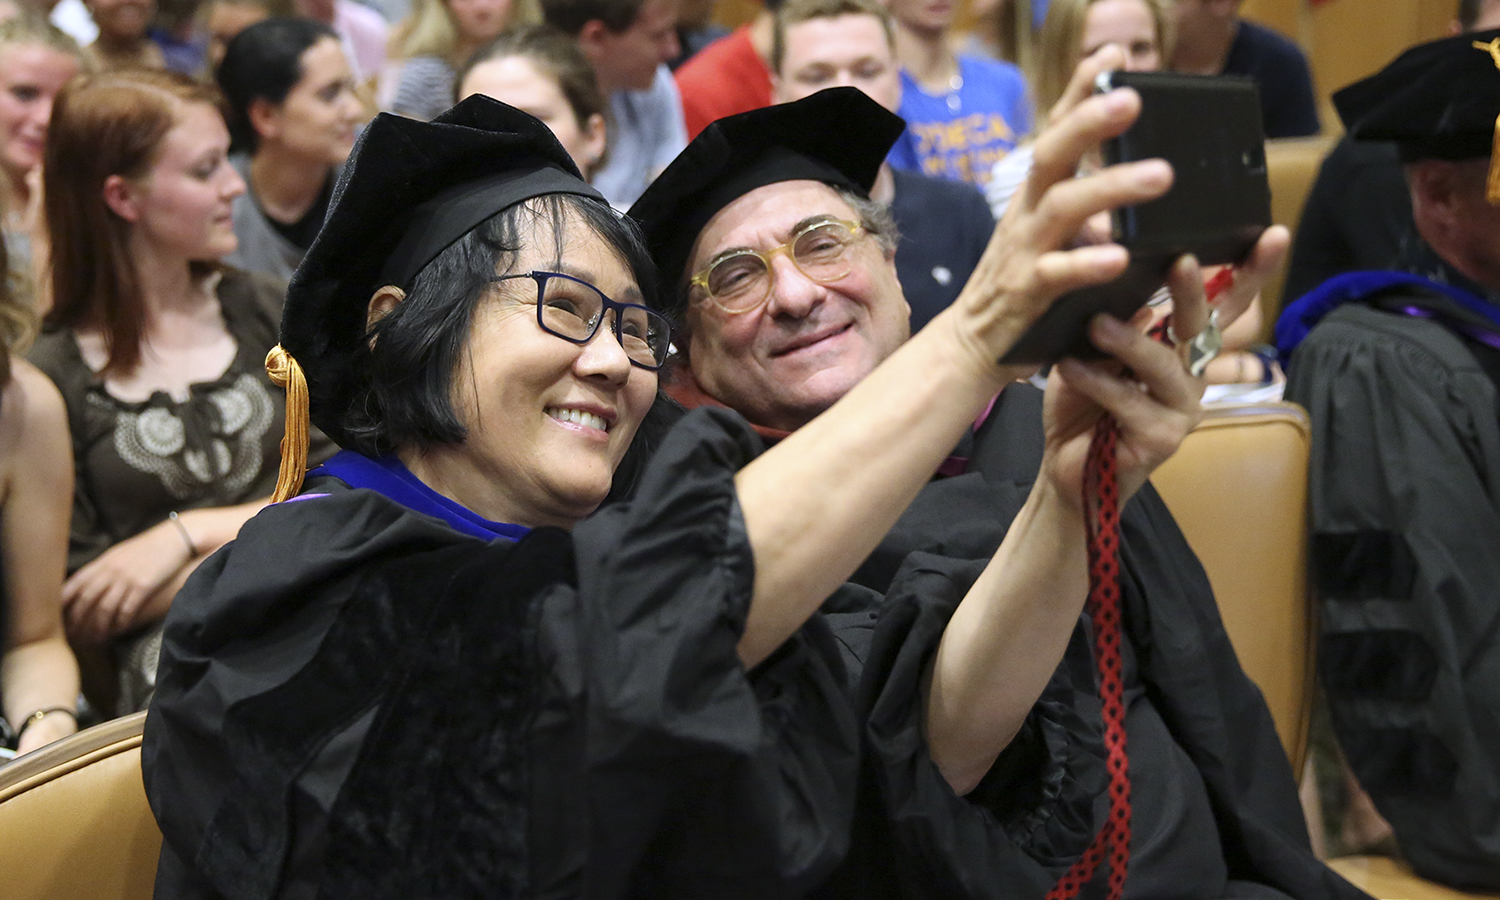 Professors of Art and Architecture Phillia Yi and  A.E. Ted Aub III take a selfie during Associate Professor of Media and Society Leah Shafer's remarks. Shafer asked the audience to take selfies in order to capture the present moment.